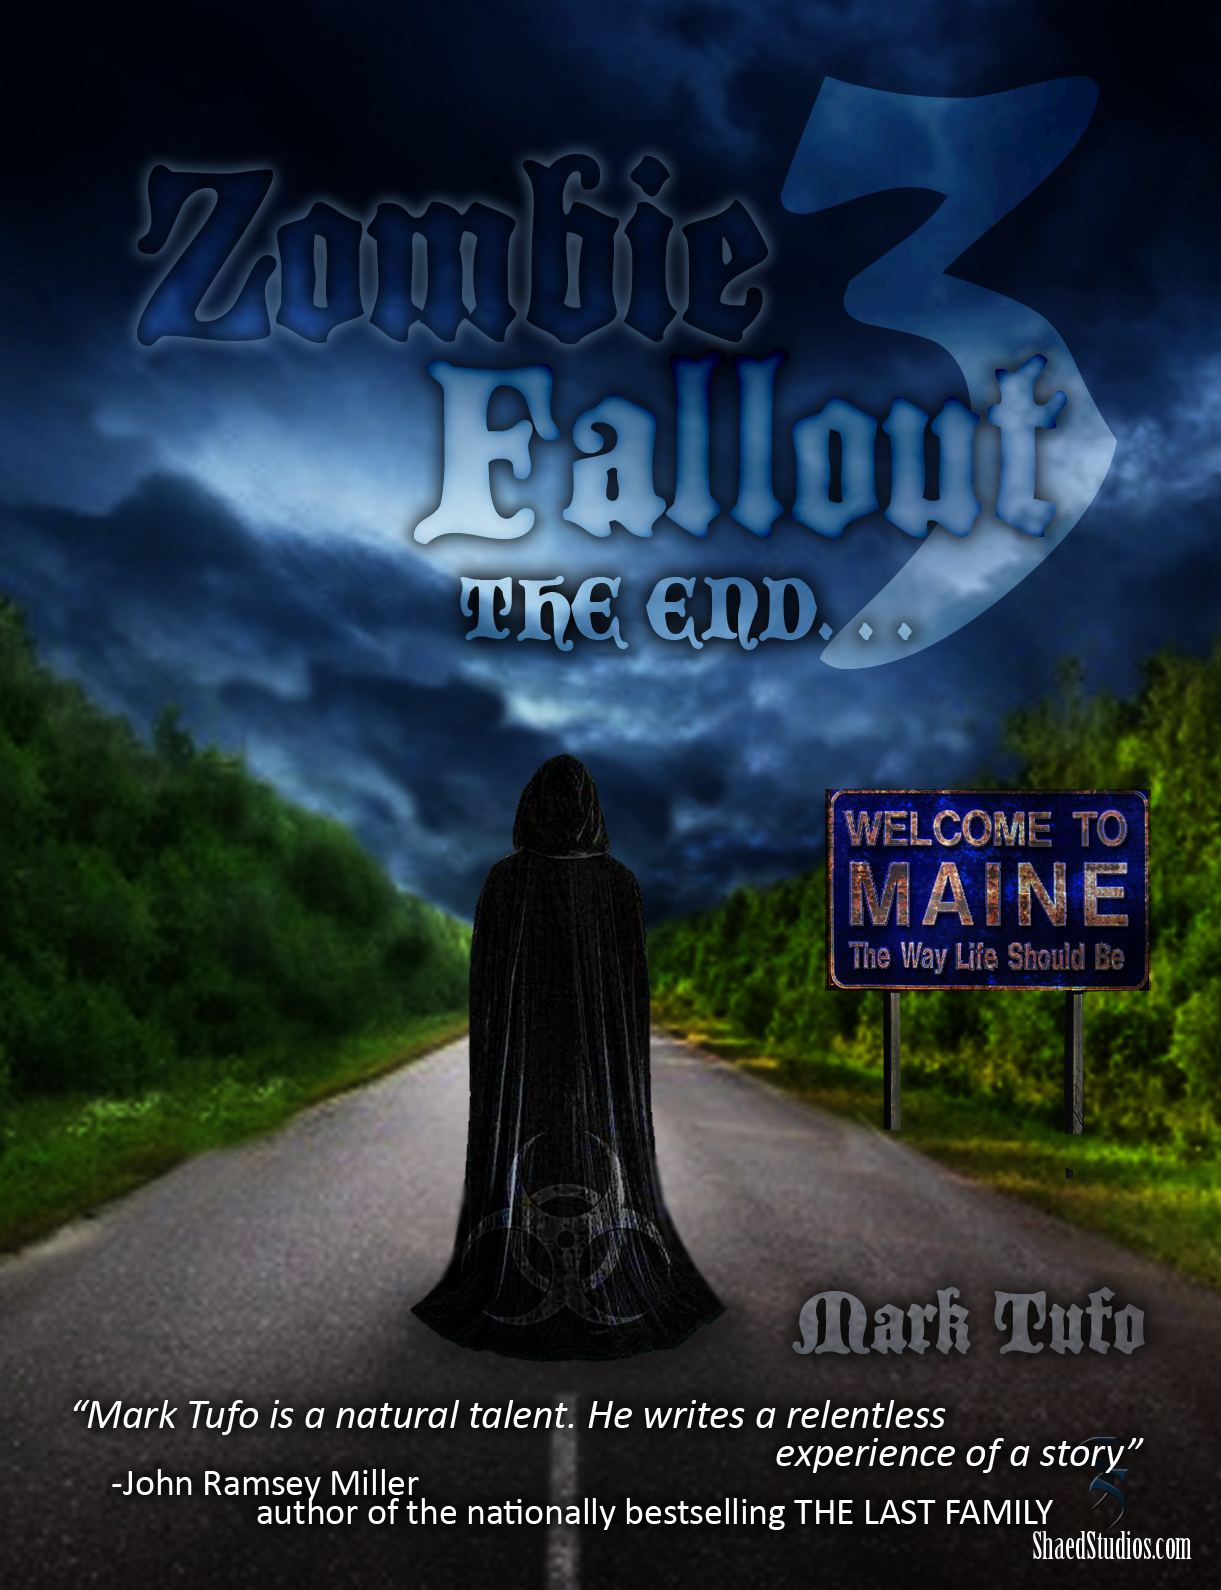 Zombie Fallout 3:  The End..... By: Mark Tufo